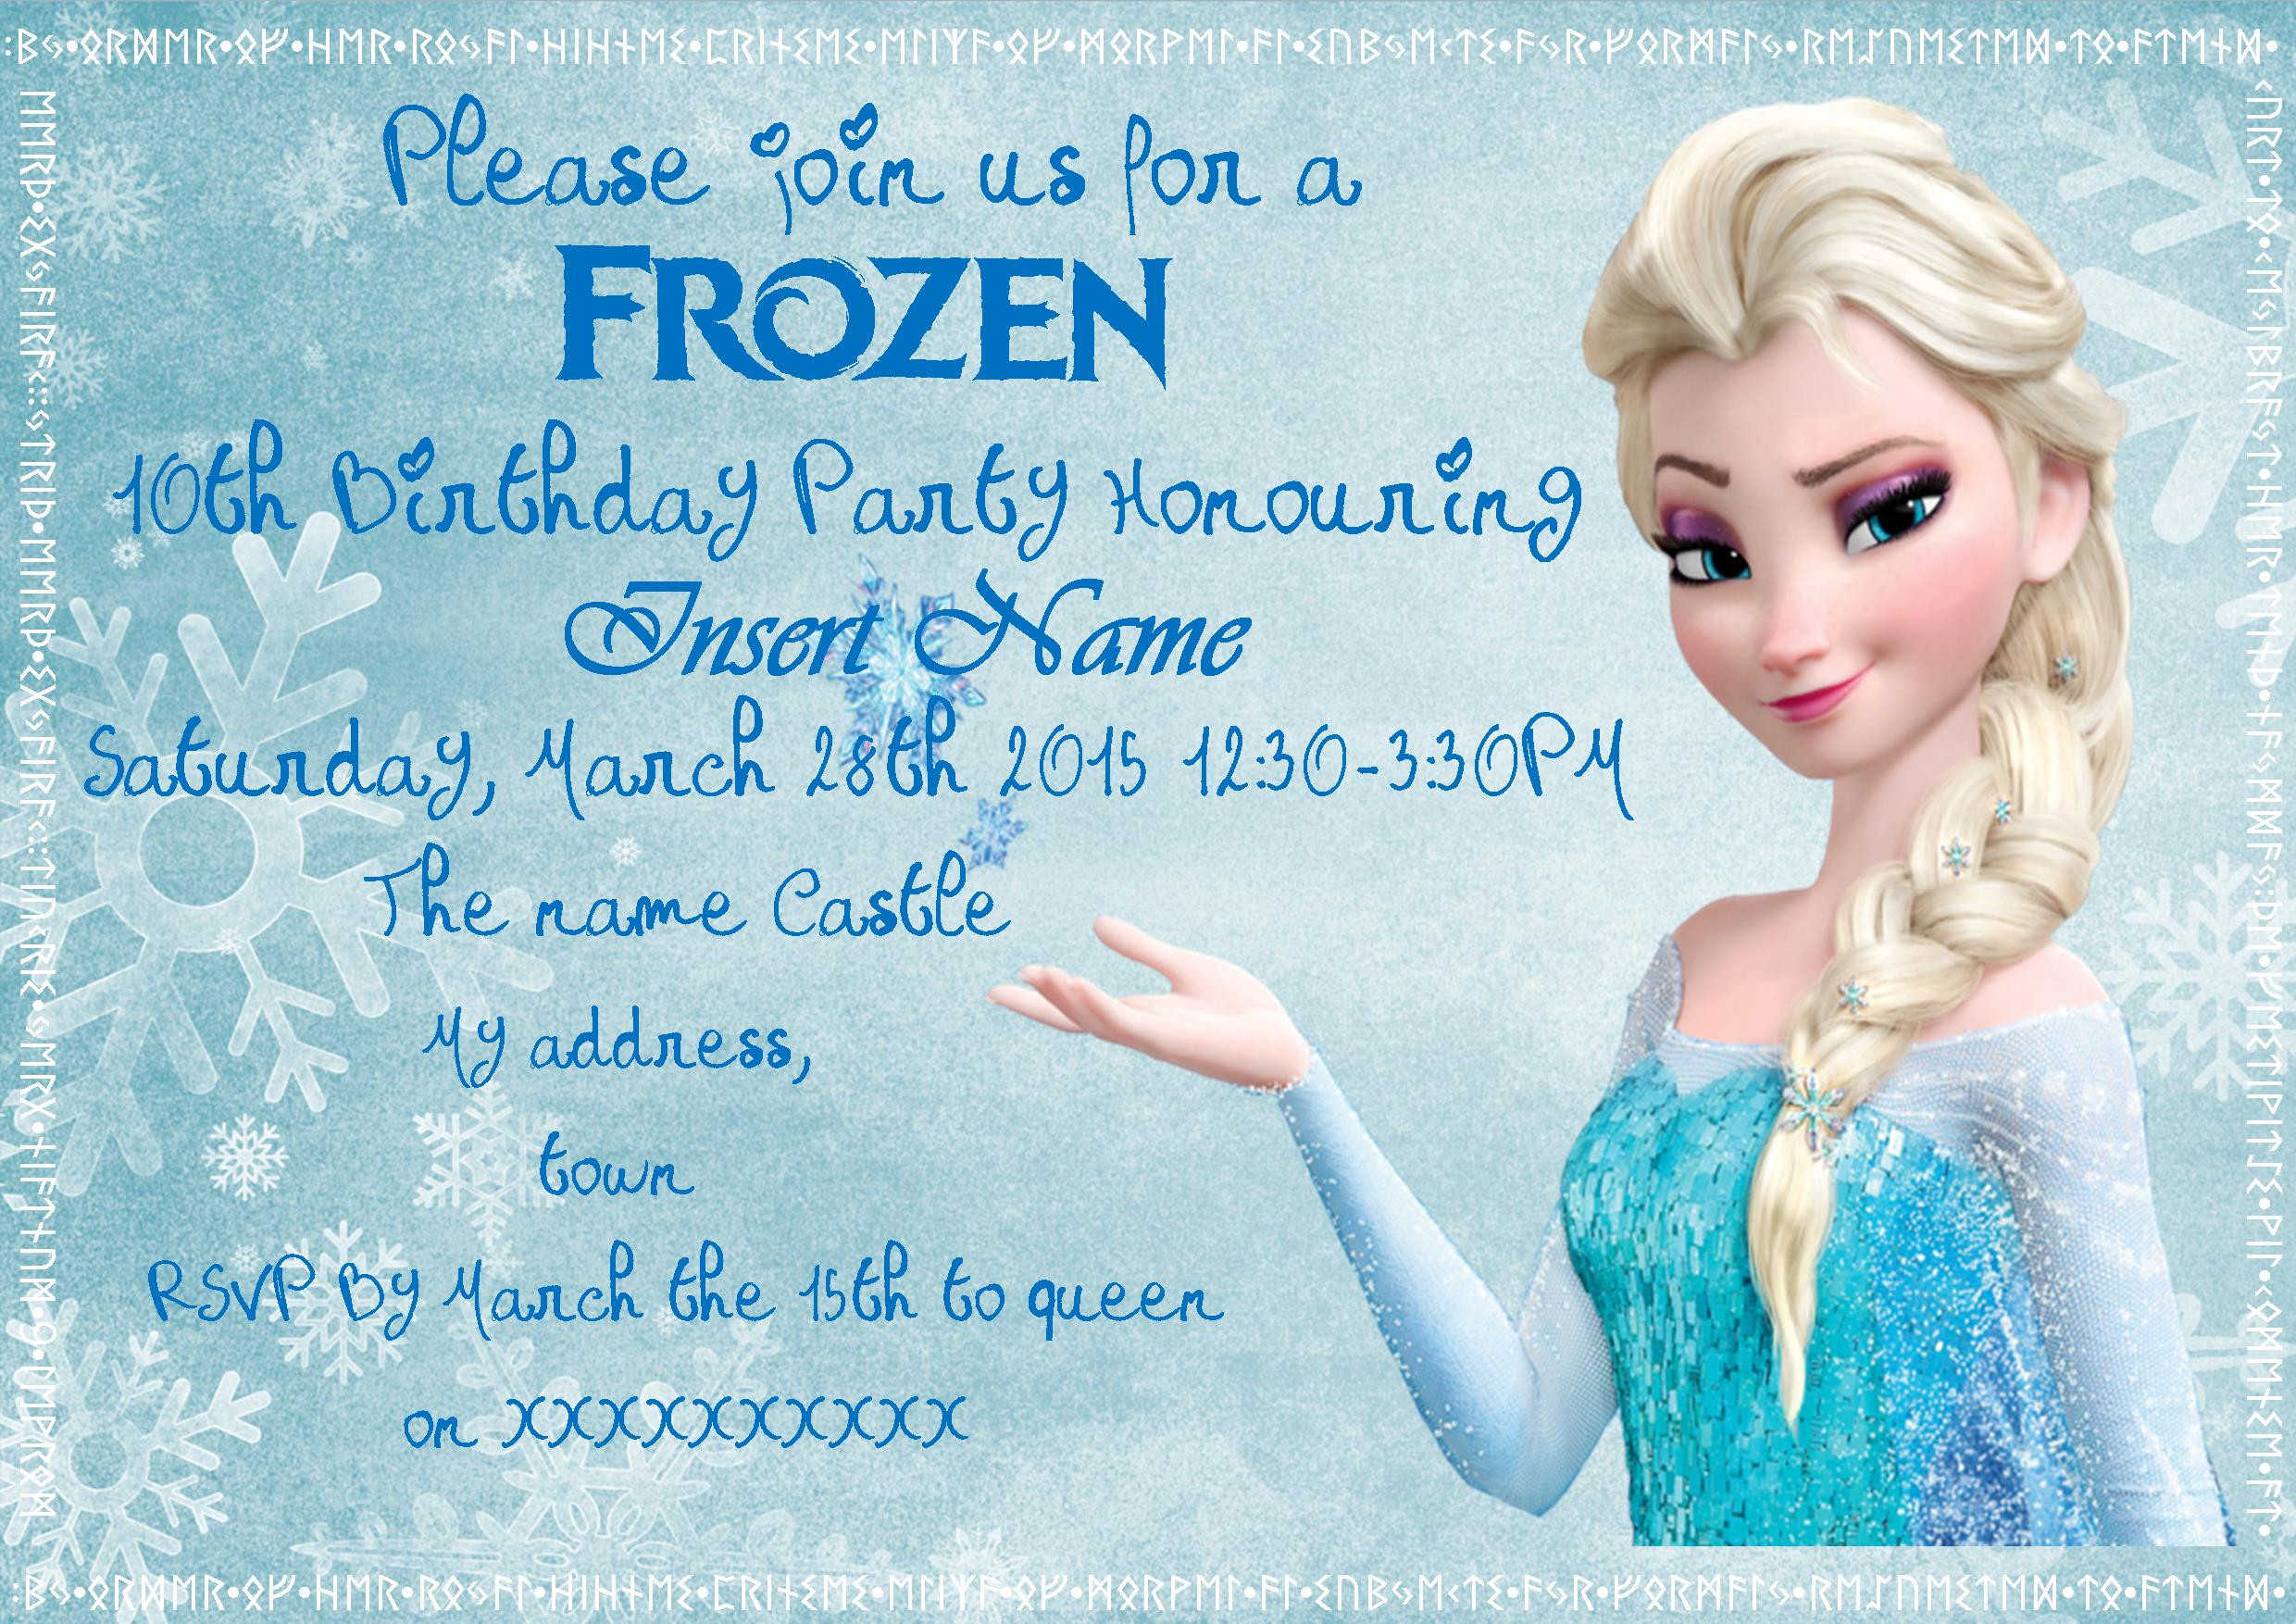 Frozen Invitations Printable Free Frozen Invite Free Printable – Mothering the Spectrum